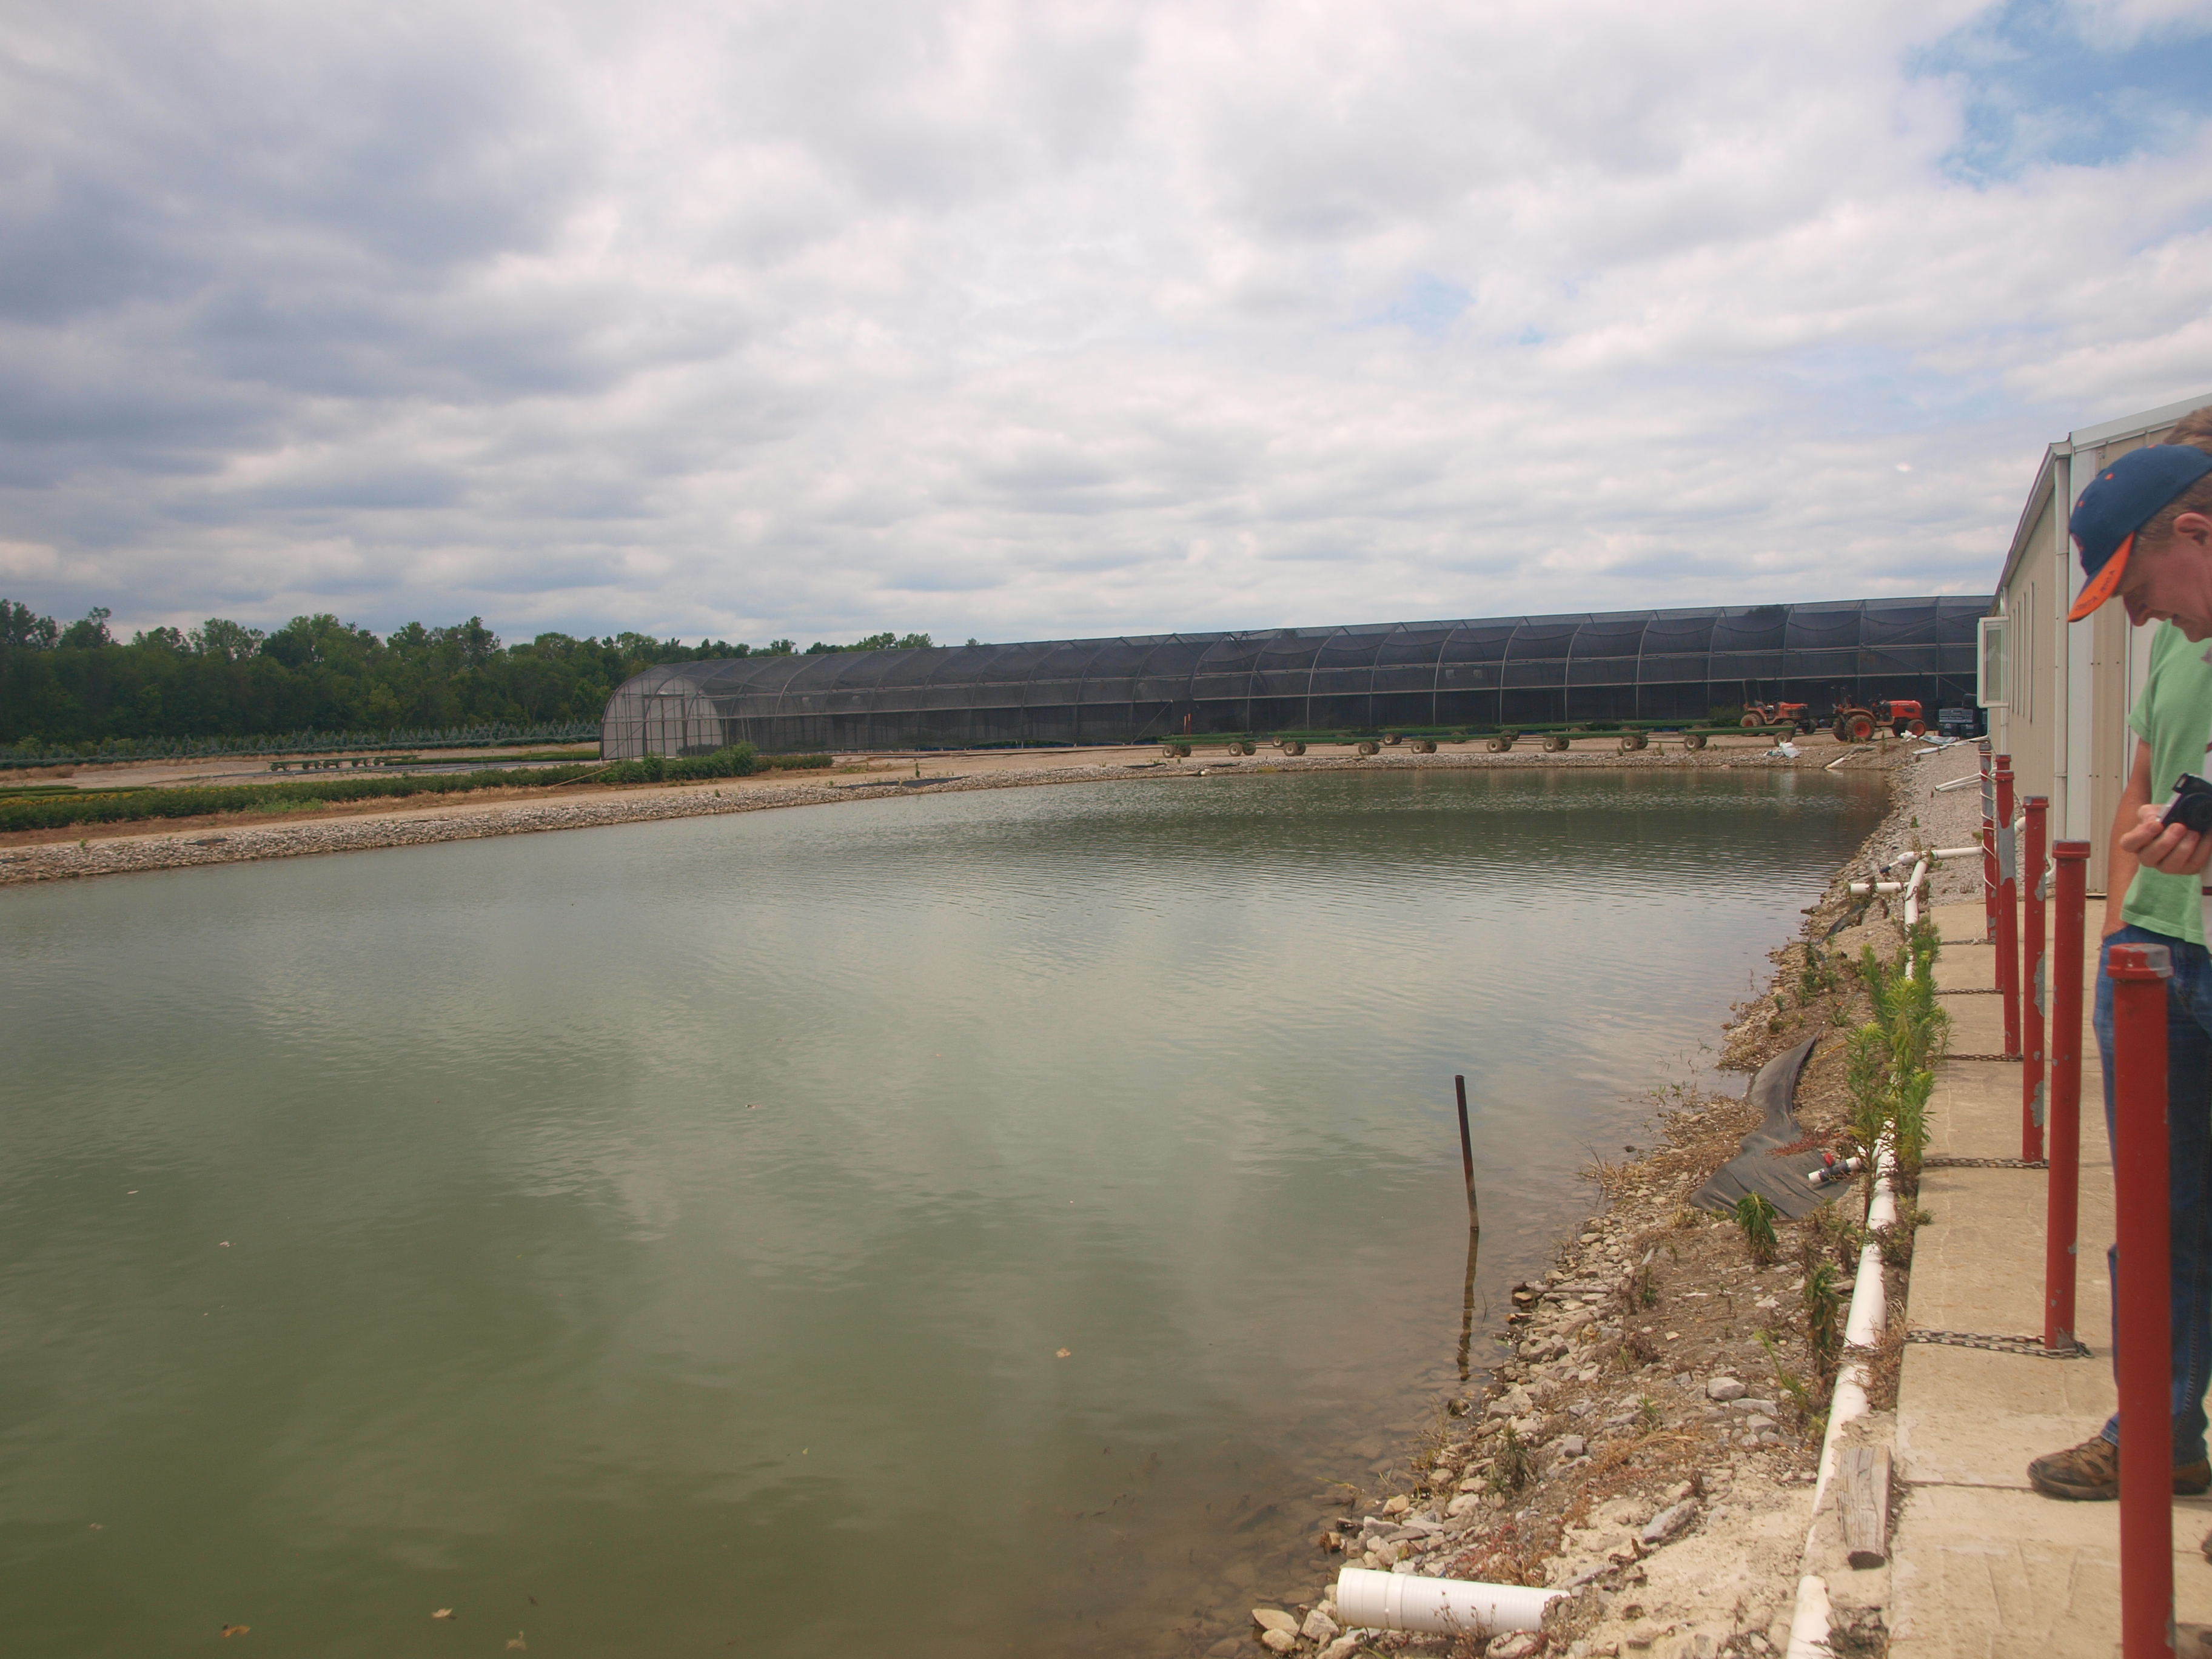 Runoff and rentention ponds used for irrigation